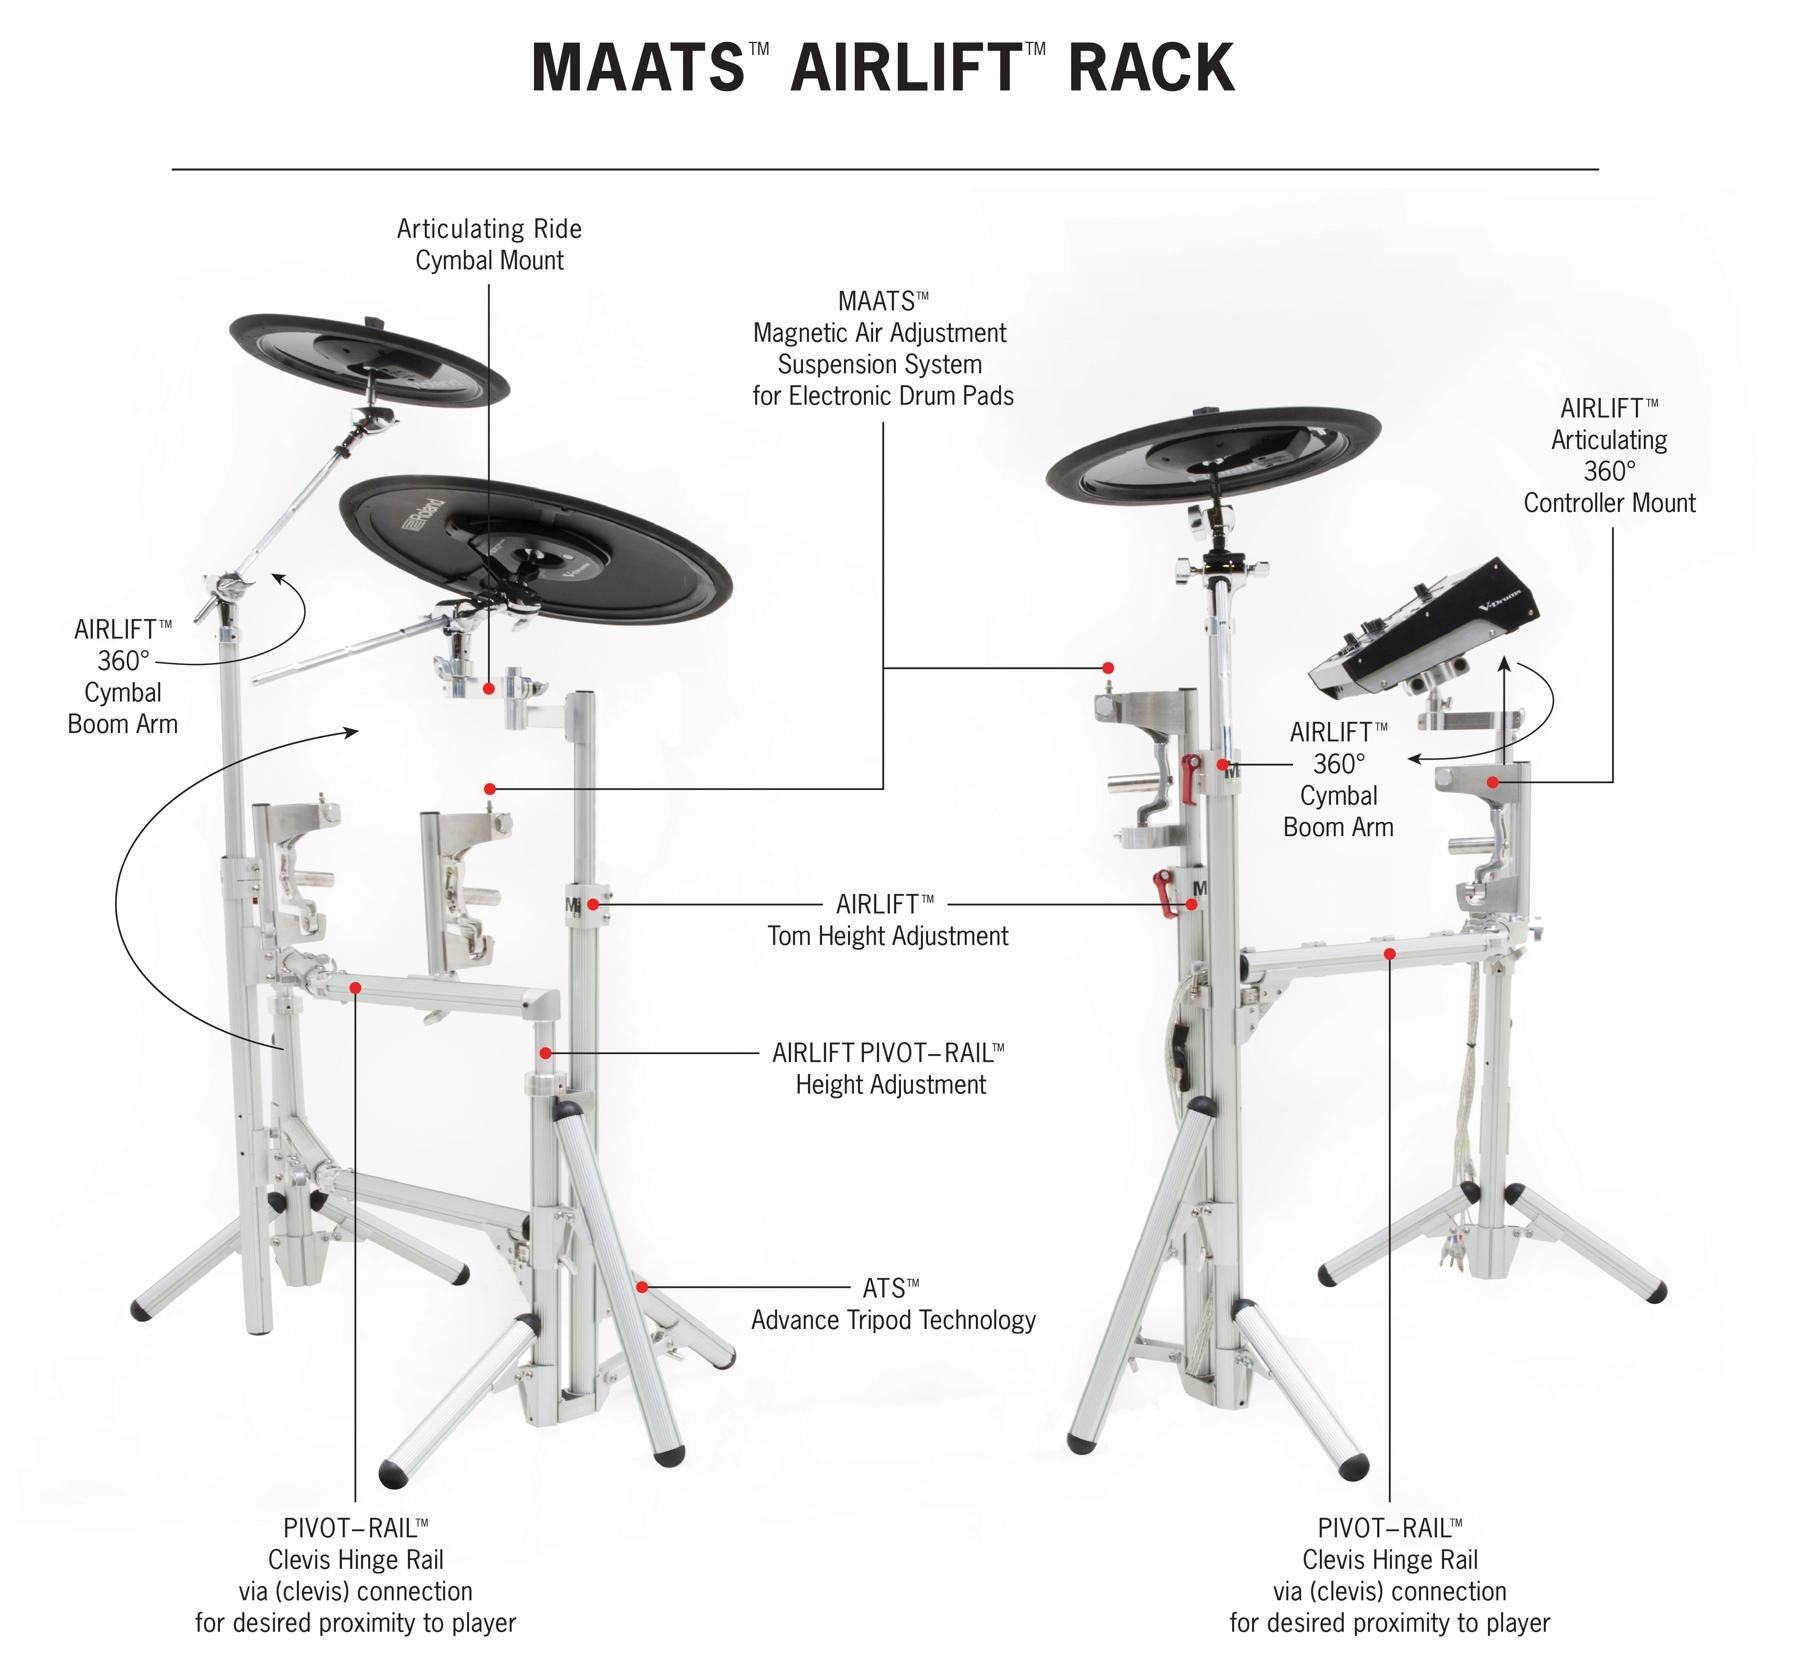 Roland Randy May Emaats E Drum Rack For Td30 Td50 Sweetwater Rs Guitarworks Wiring Diagrams Image 1